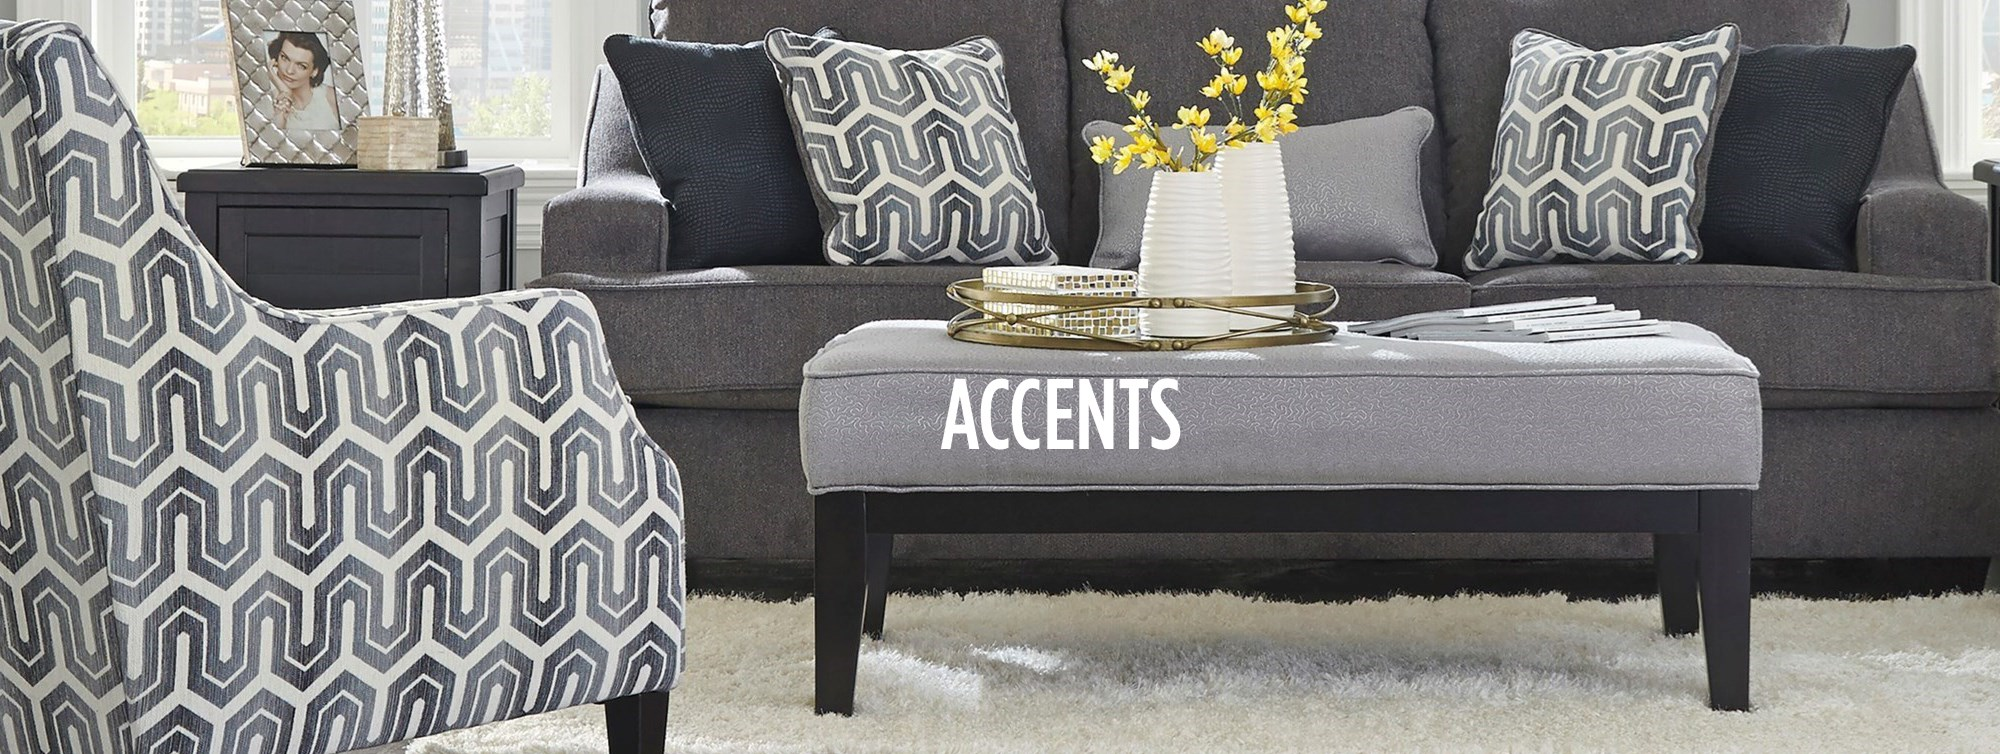 Accents & Accessories